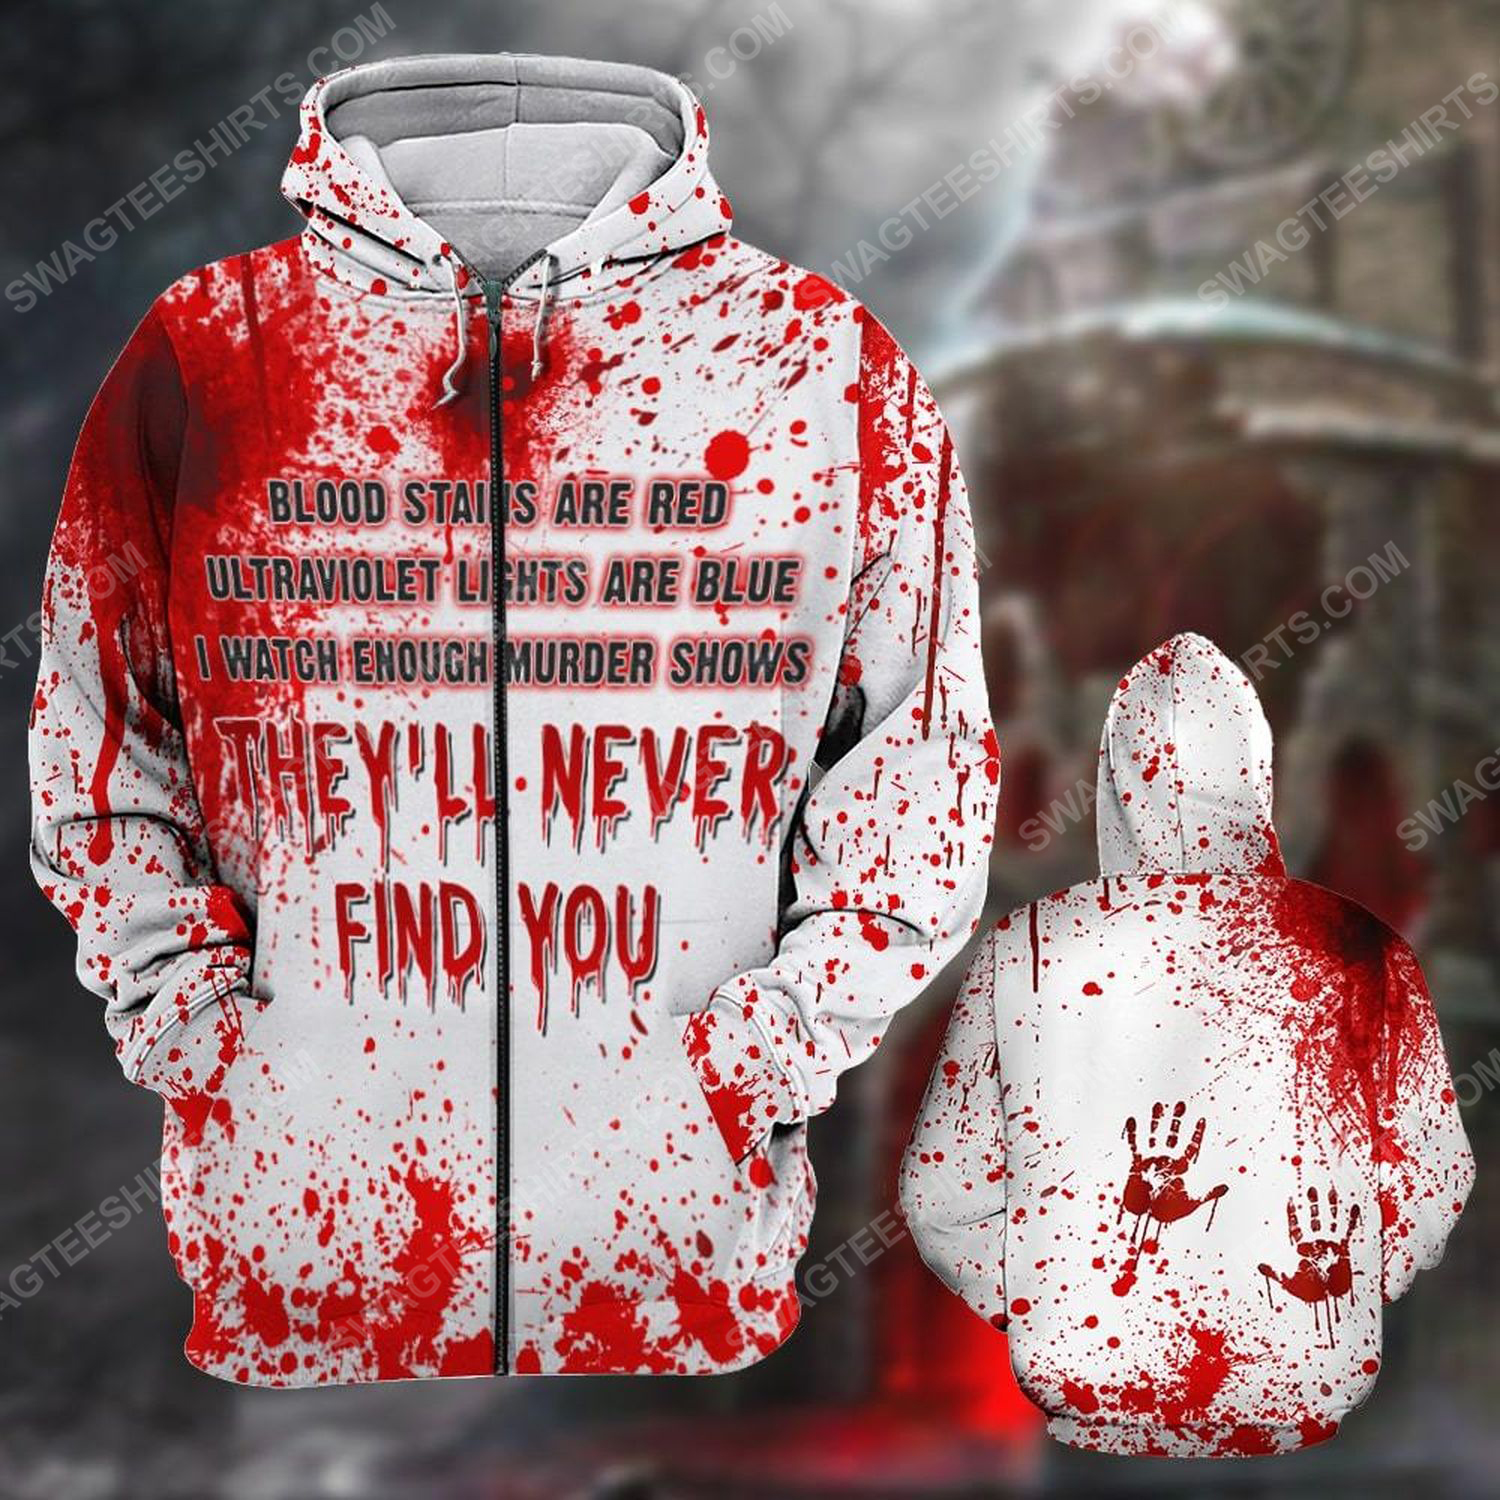 Halloween blood stains are red ultraviolet lights are blue i watch enough murder shows they'll never find you zip hoodie